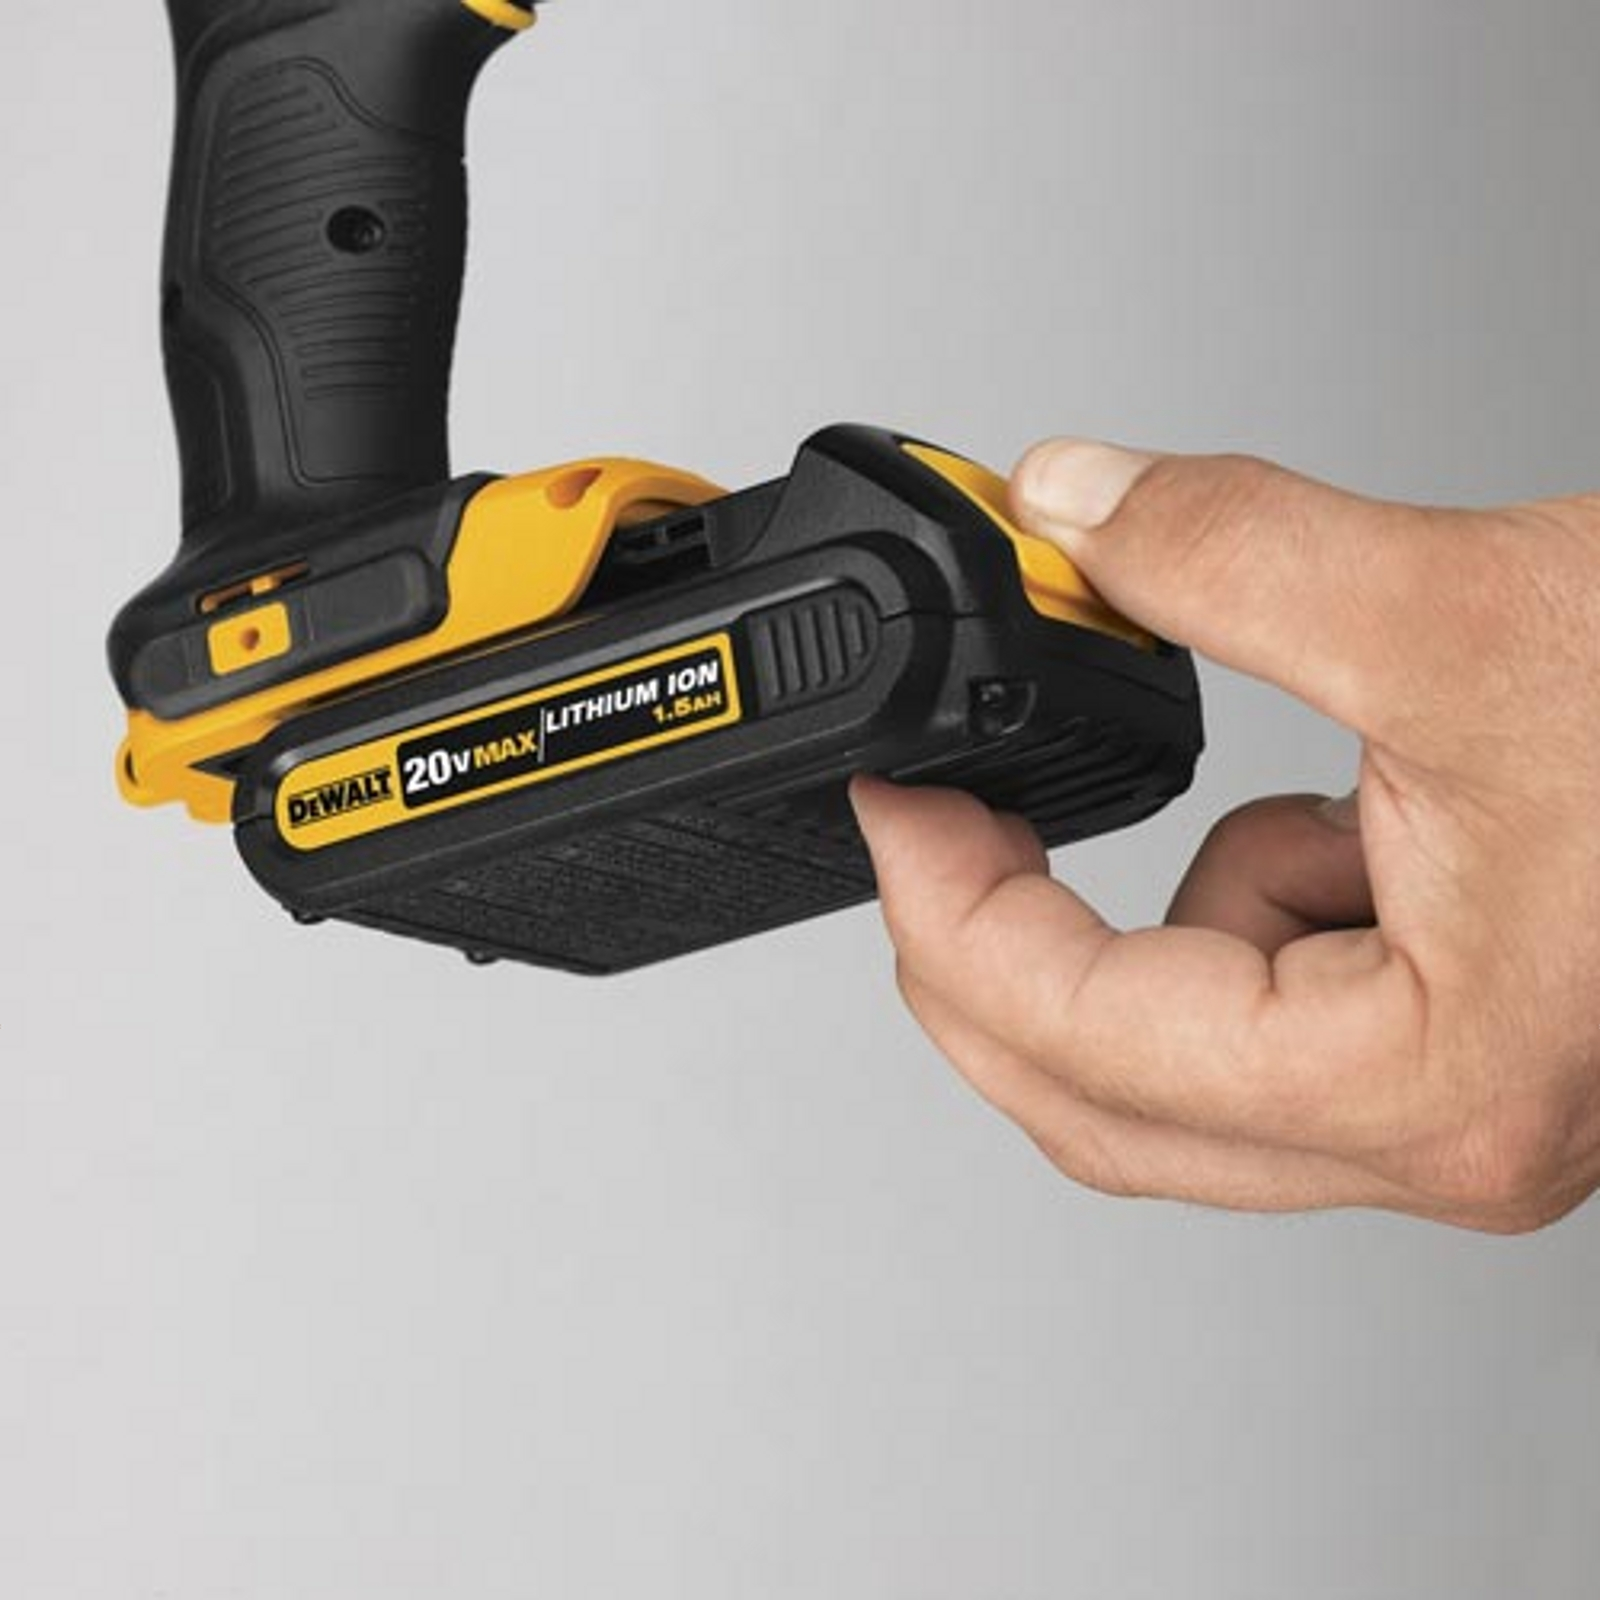 DeWalt 20 V MAX* Lithium Ion Compact Battery Pack (1.5 Ah)